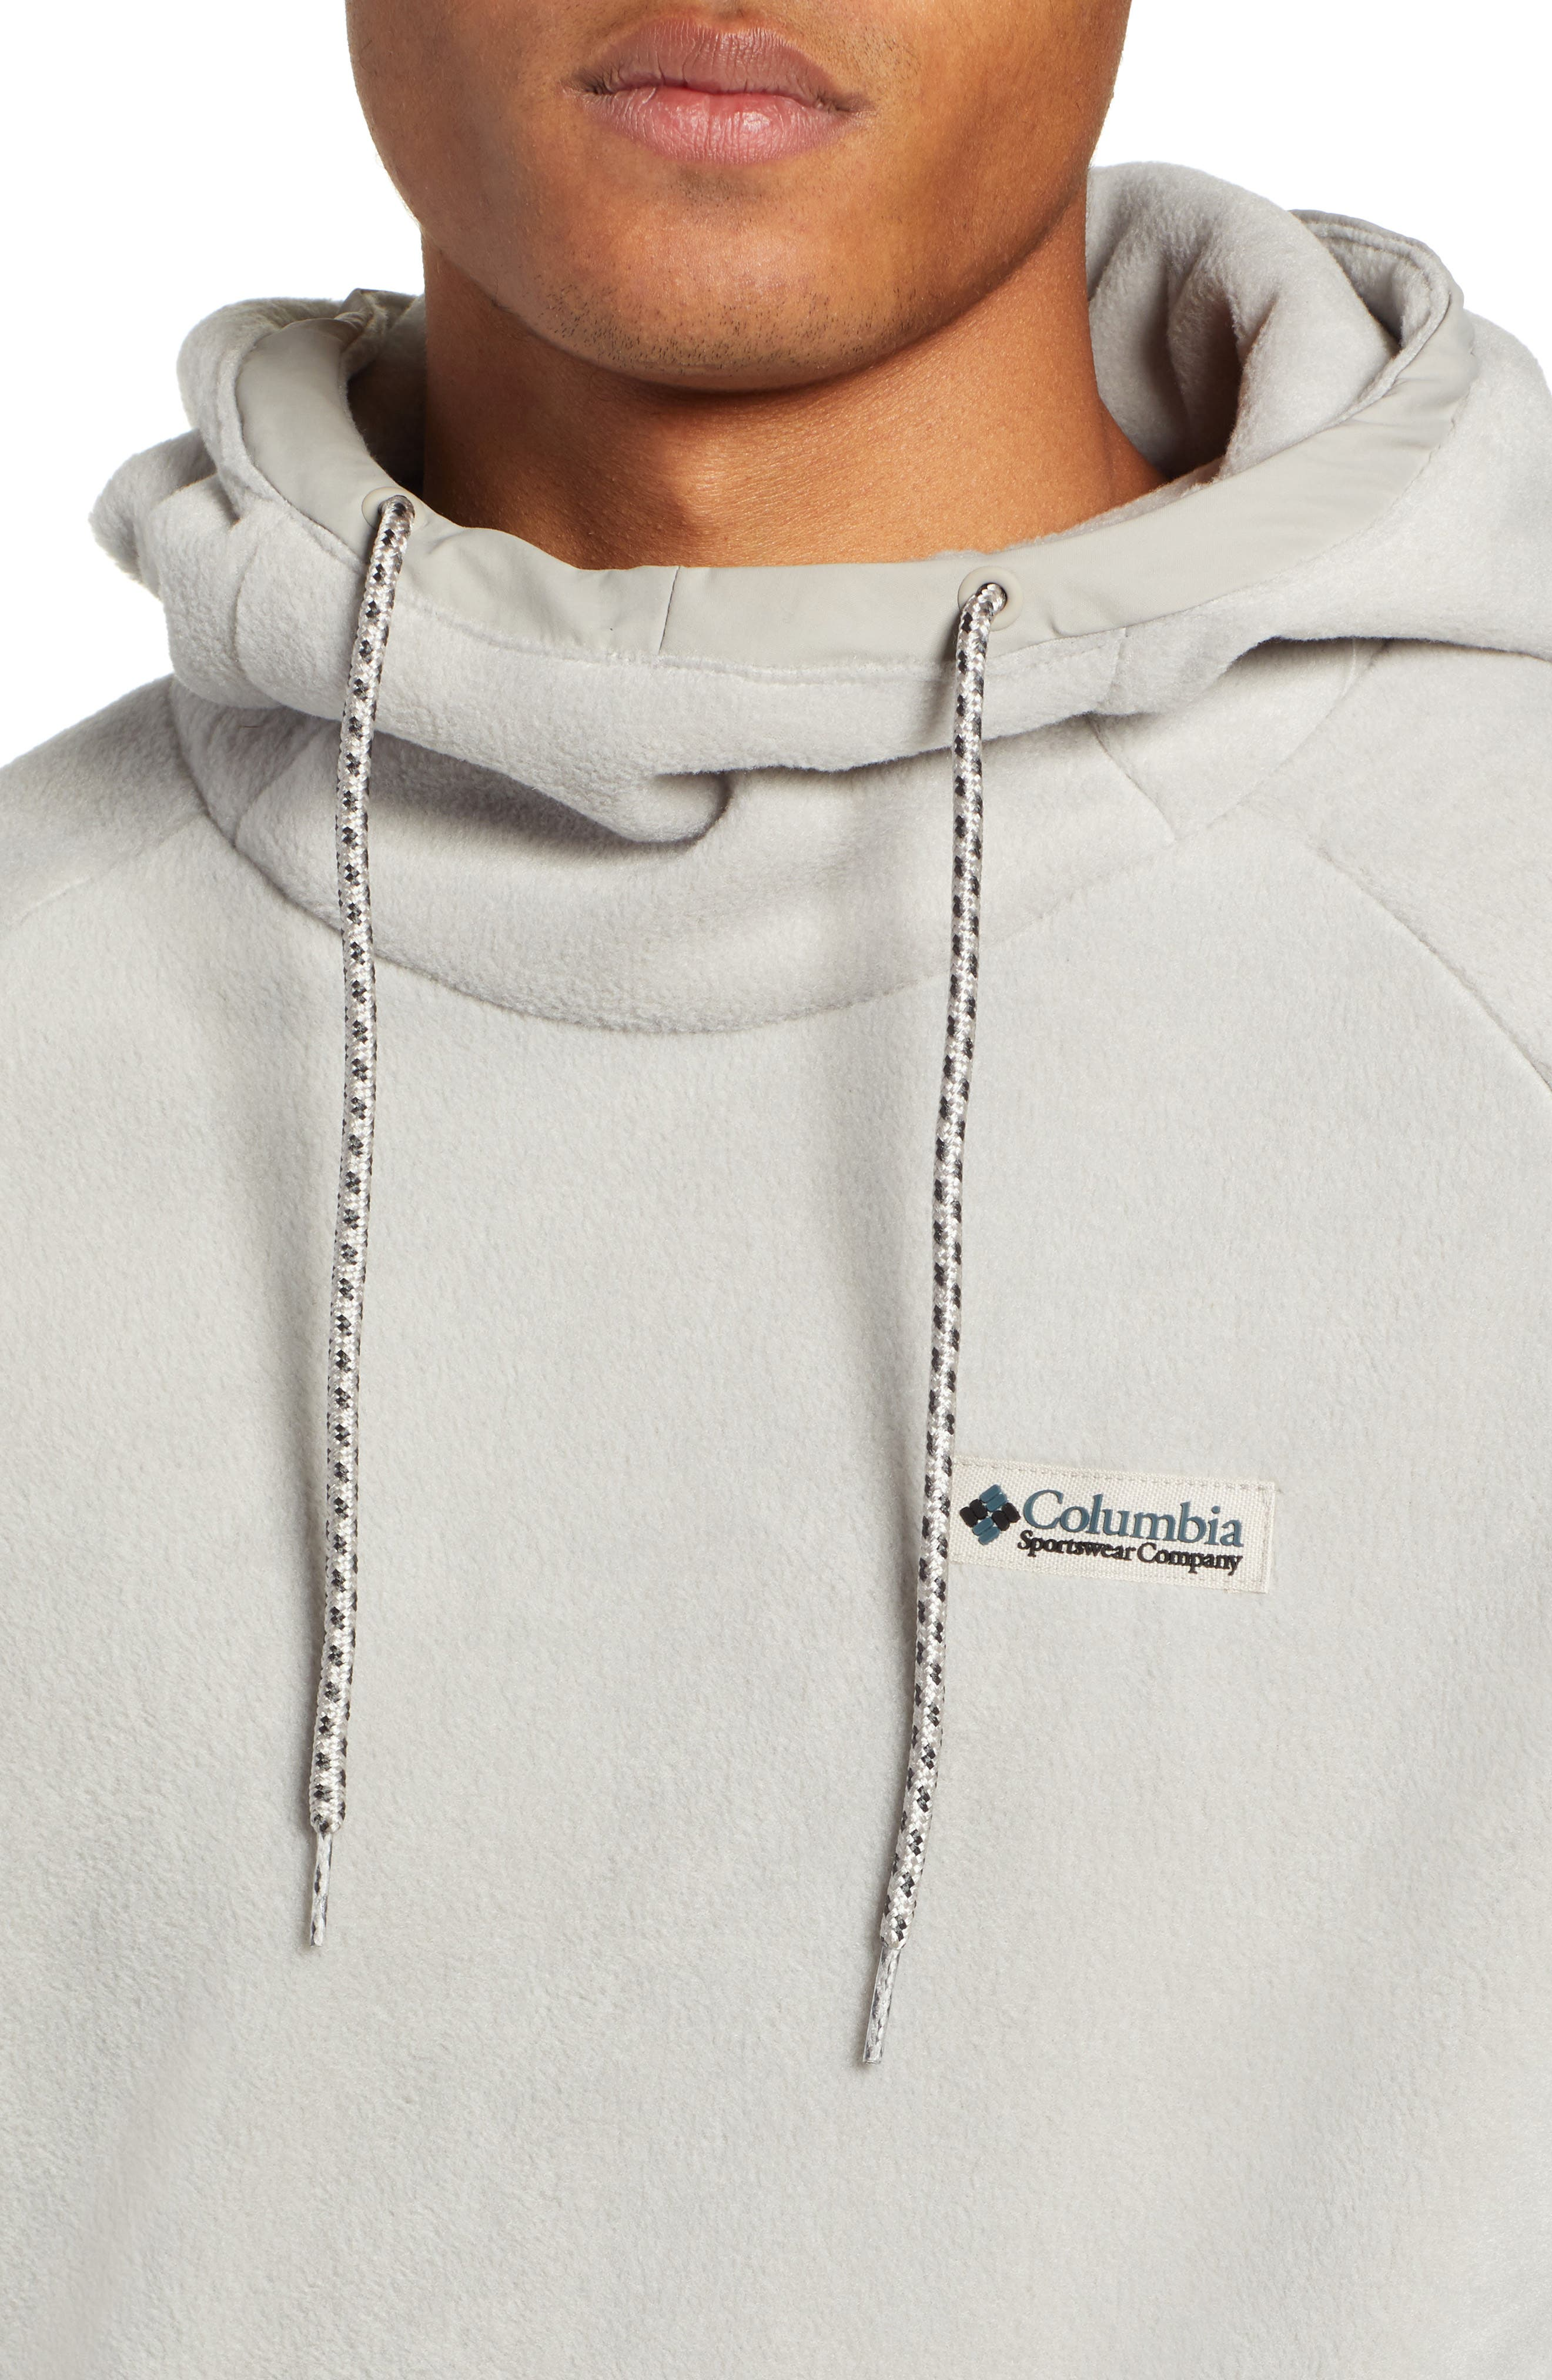 CSC Fleece Hoodie,                             Alternate thumbnail 4, color,                             027